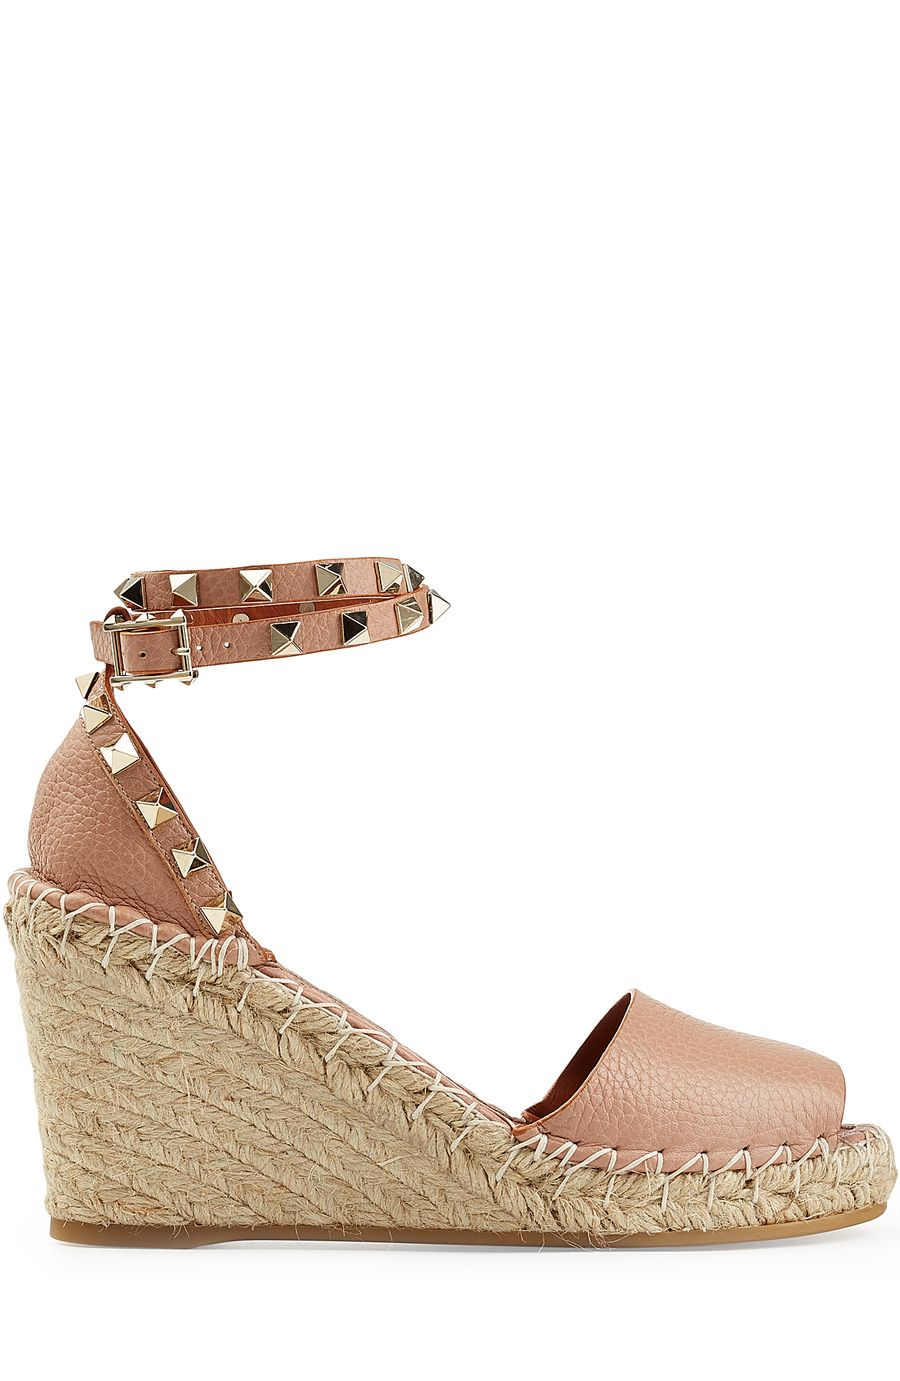 e118b93a6c5 VALENTINO Leather Espadrille Wedge Sandals With Rockstud Trim ...